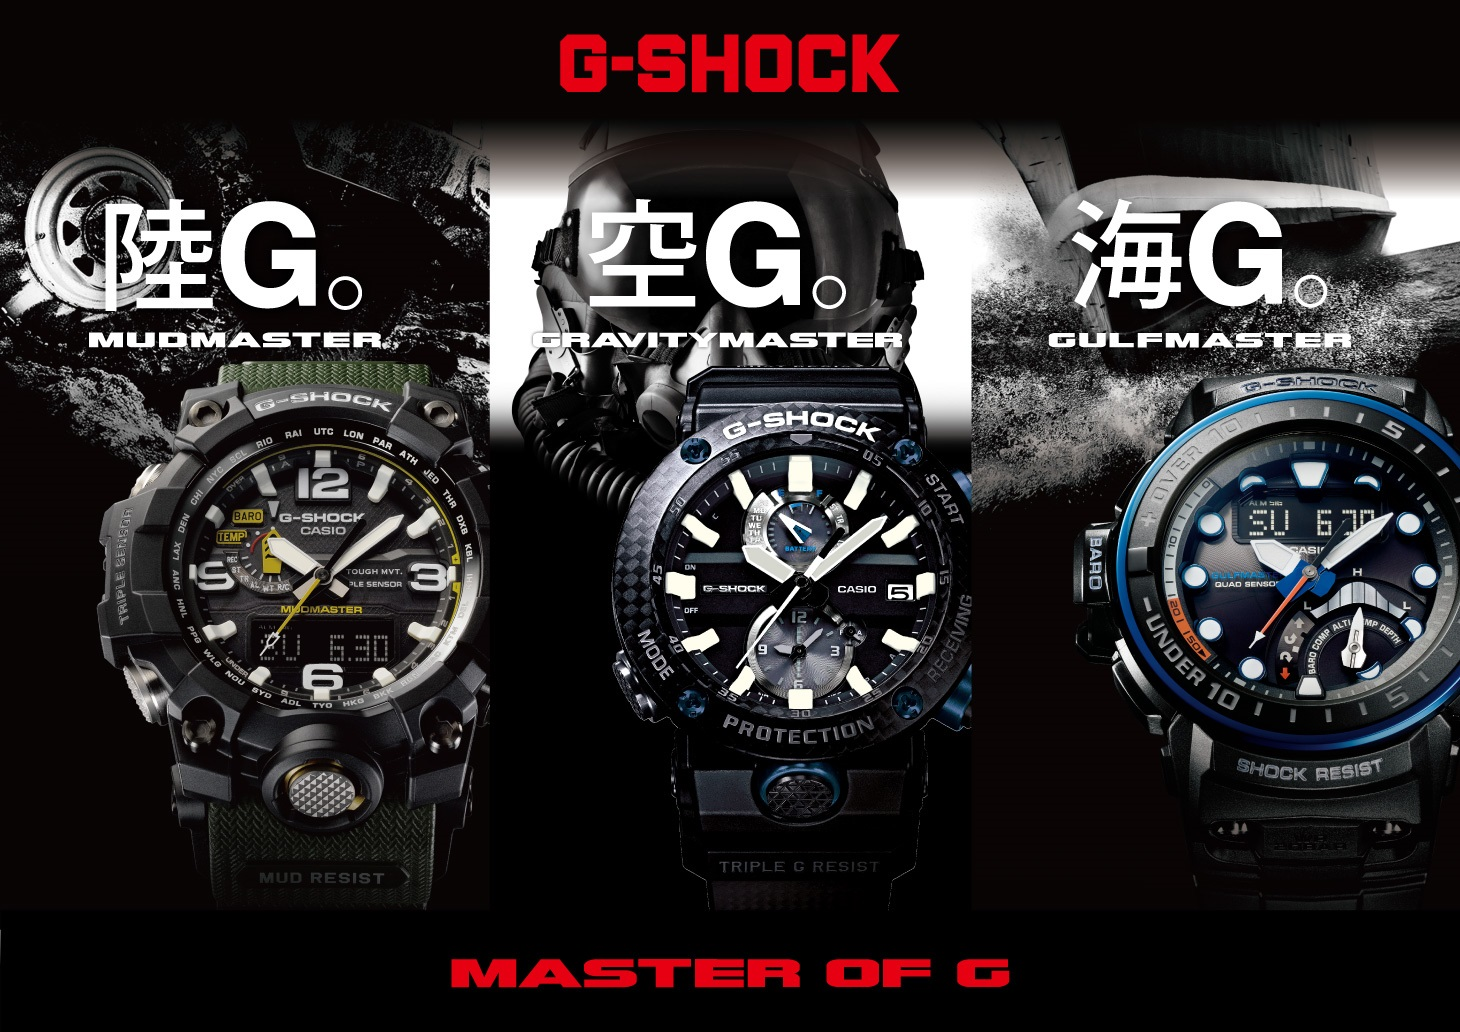 G-SHOCK MASTER OF G フェア